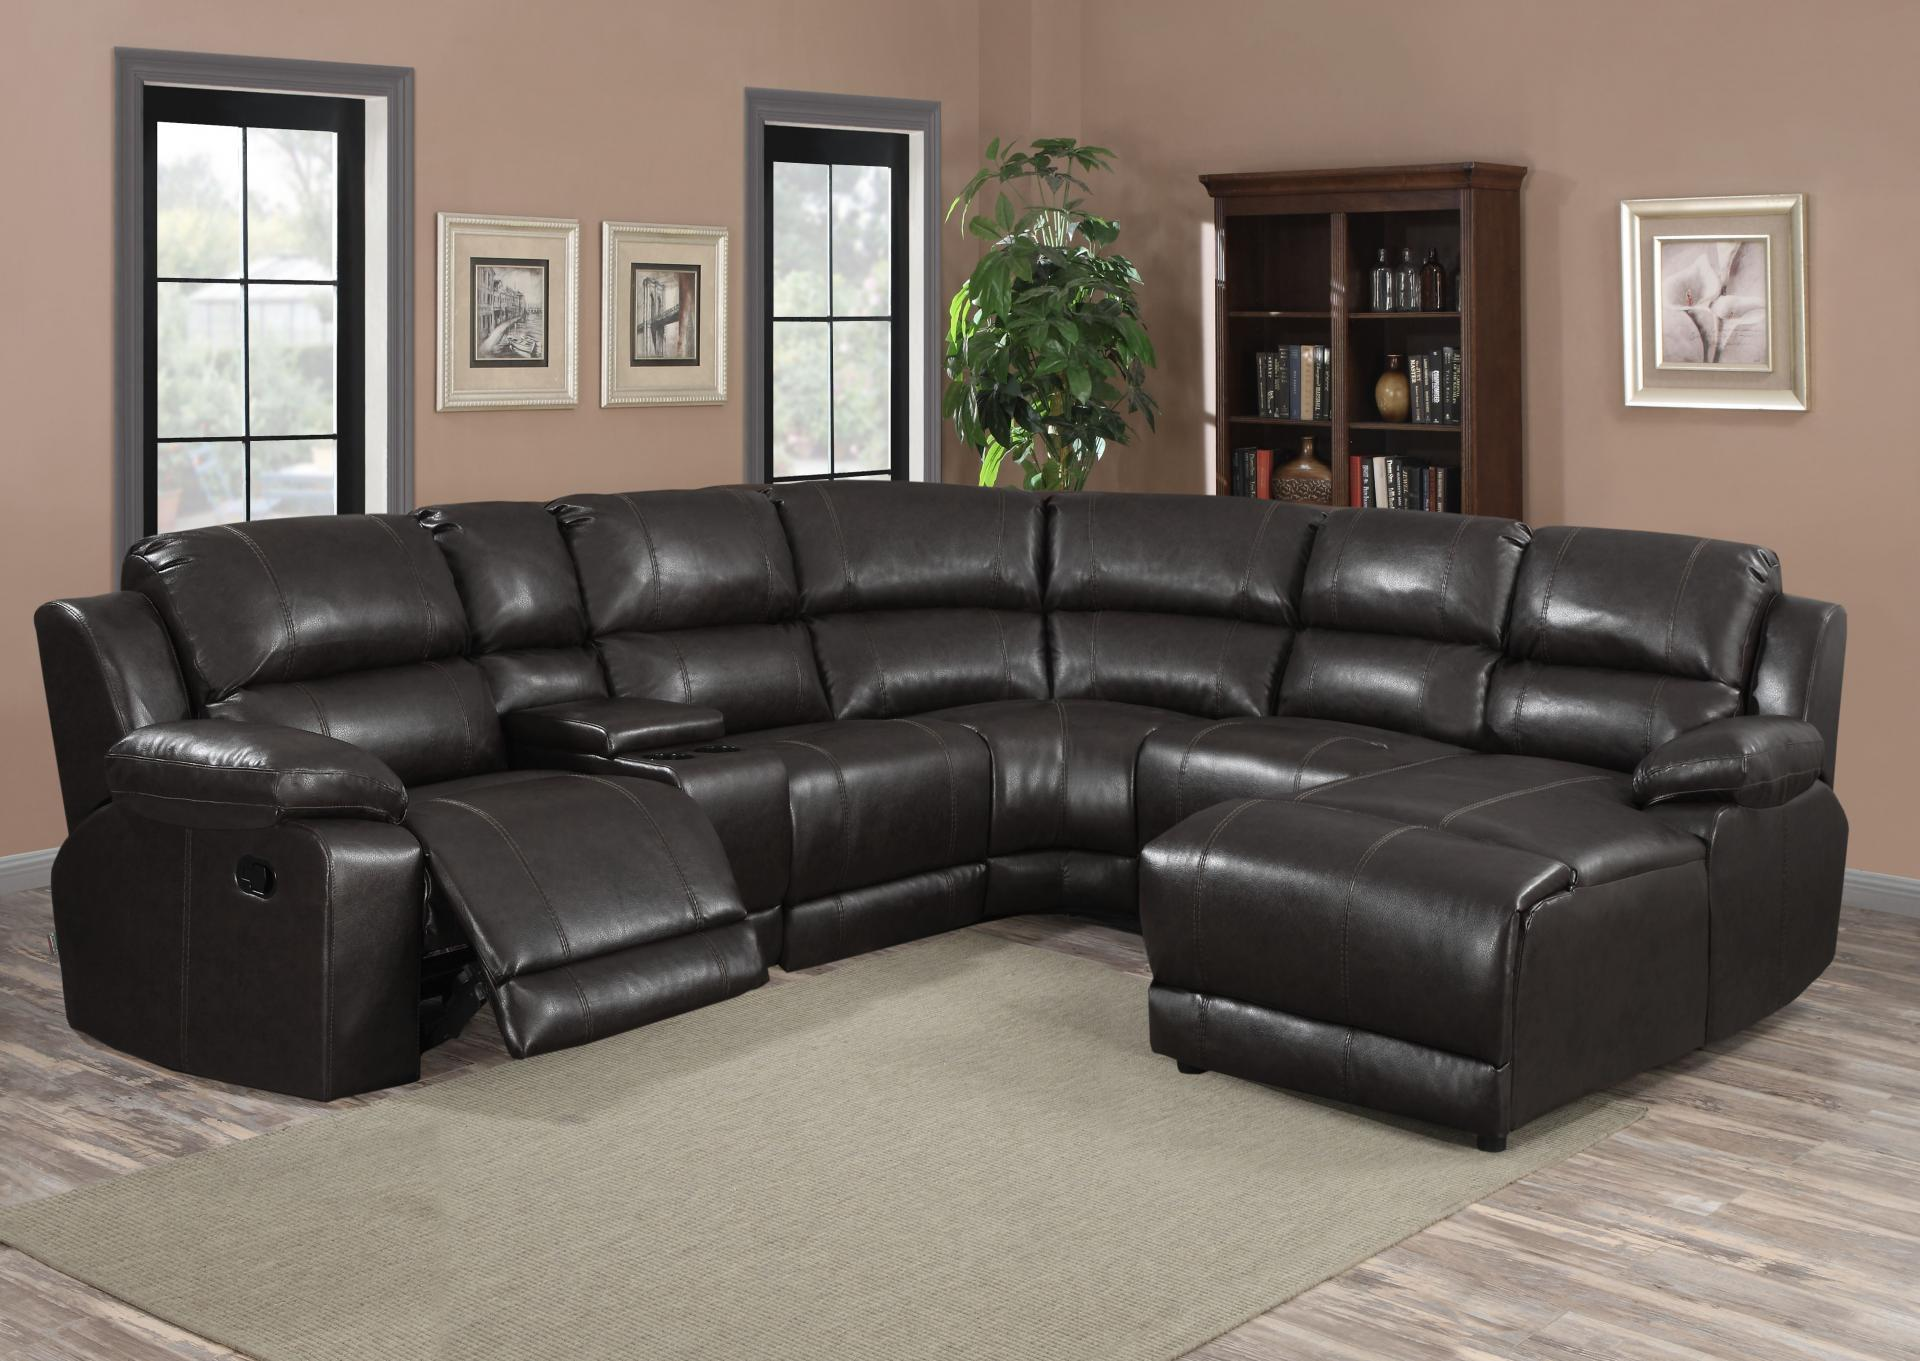 212 6pc Black Leather Sectional ,Life style